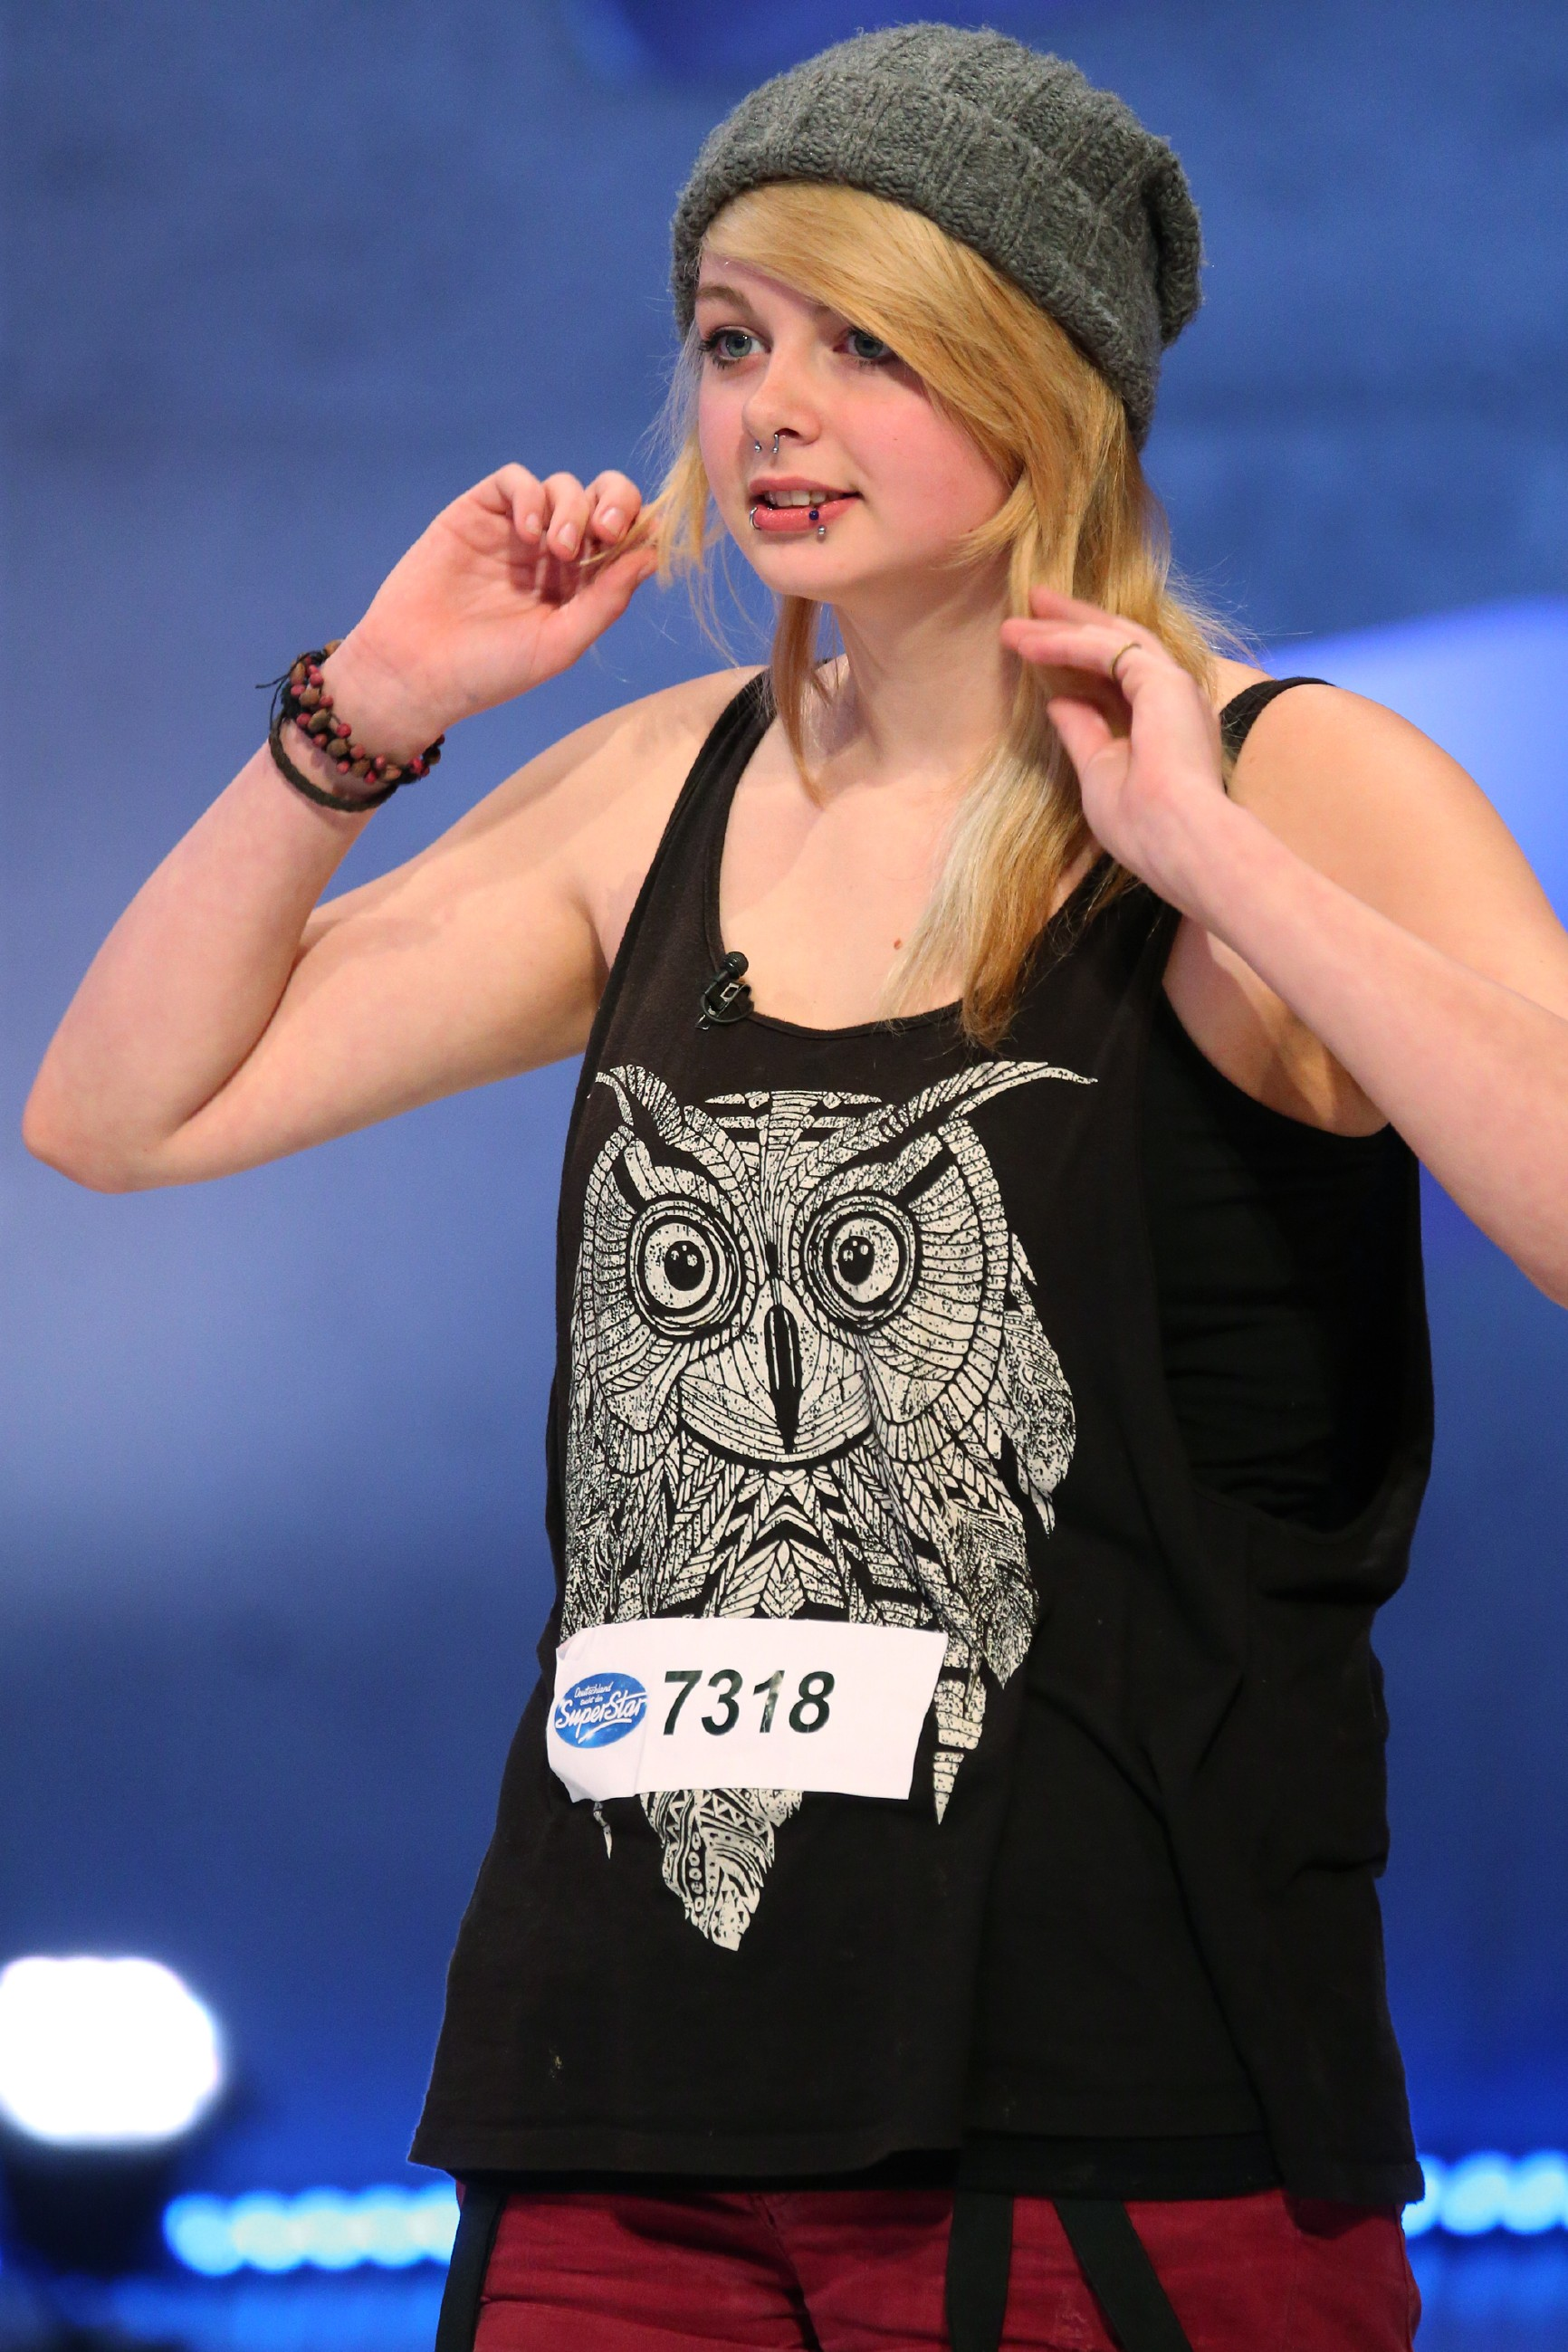 DSDS 2015 Casting 8 - Kimberly Jacobs